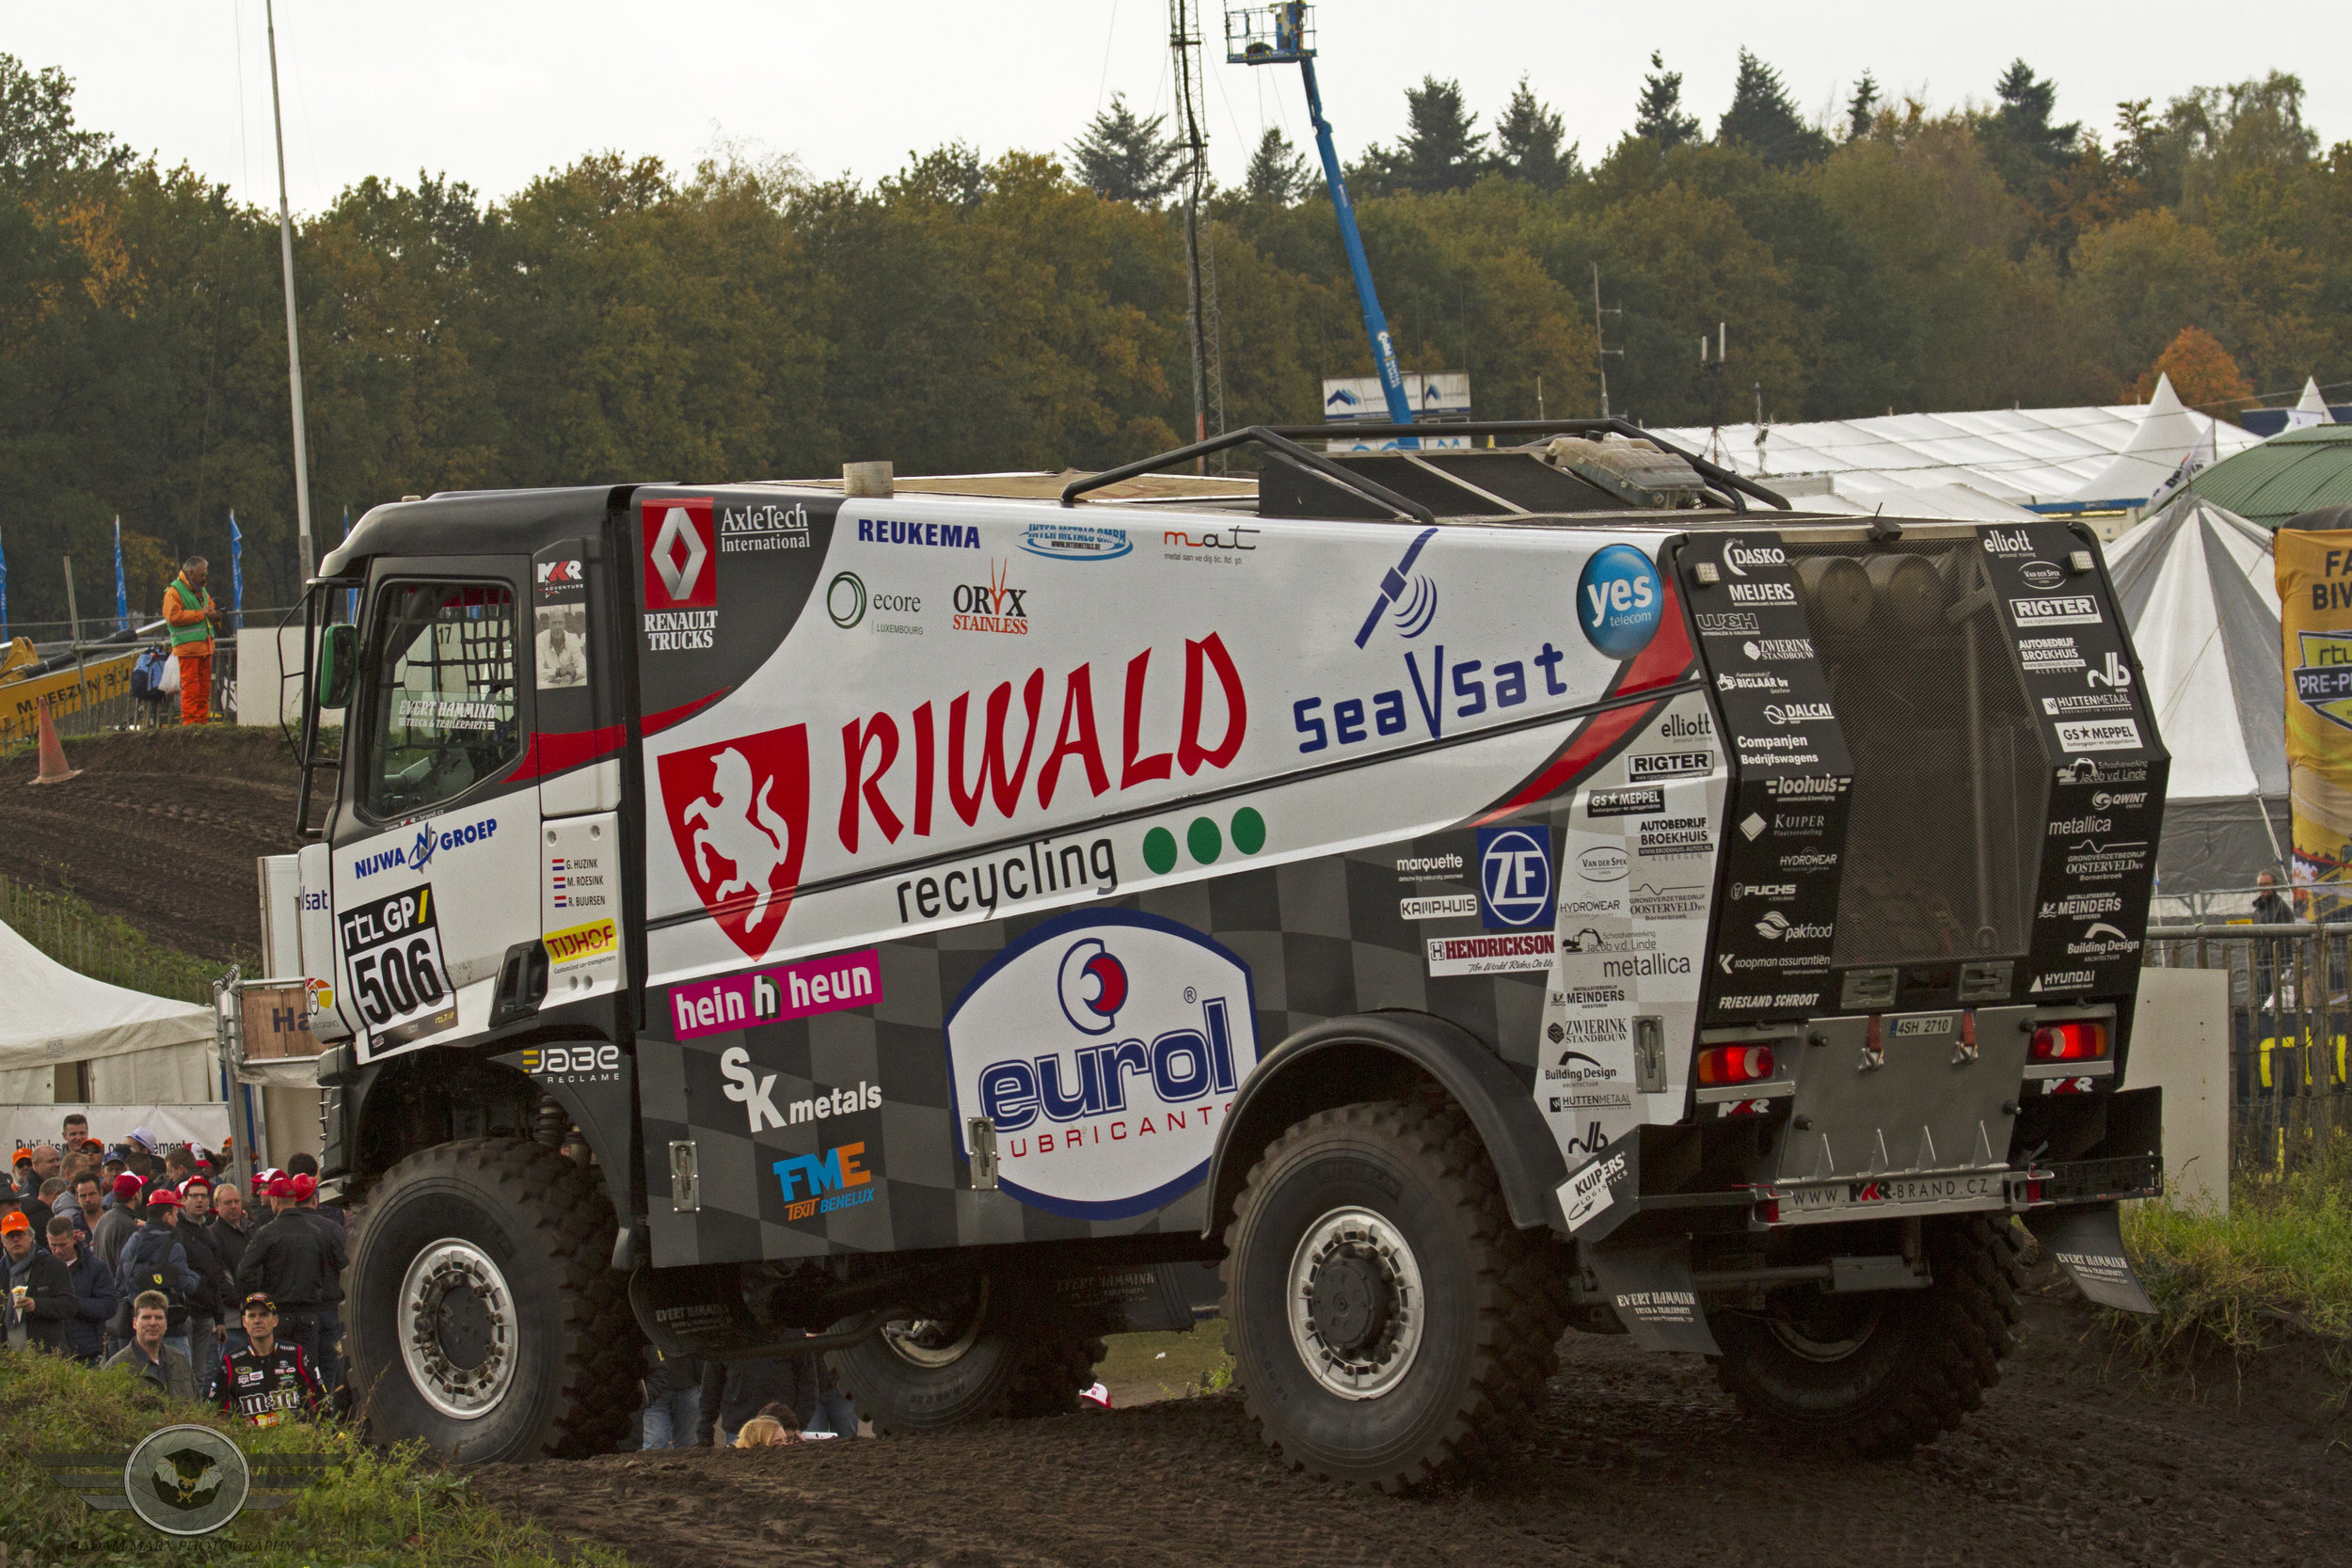 Gert Huzink in his Renault K520 on the hill.